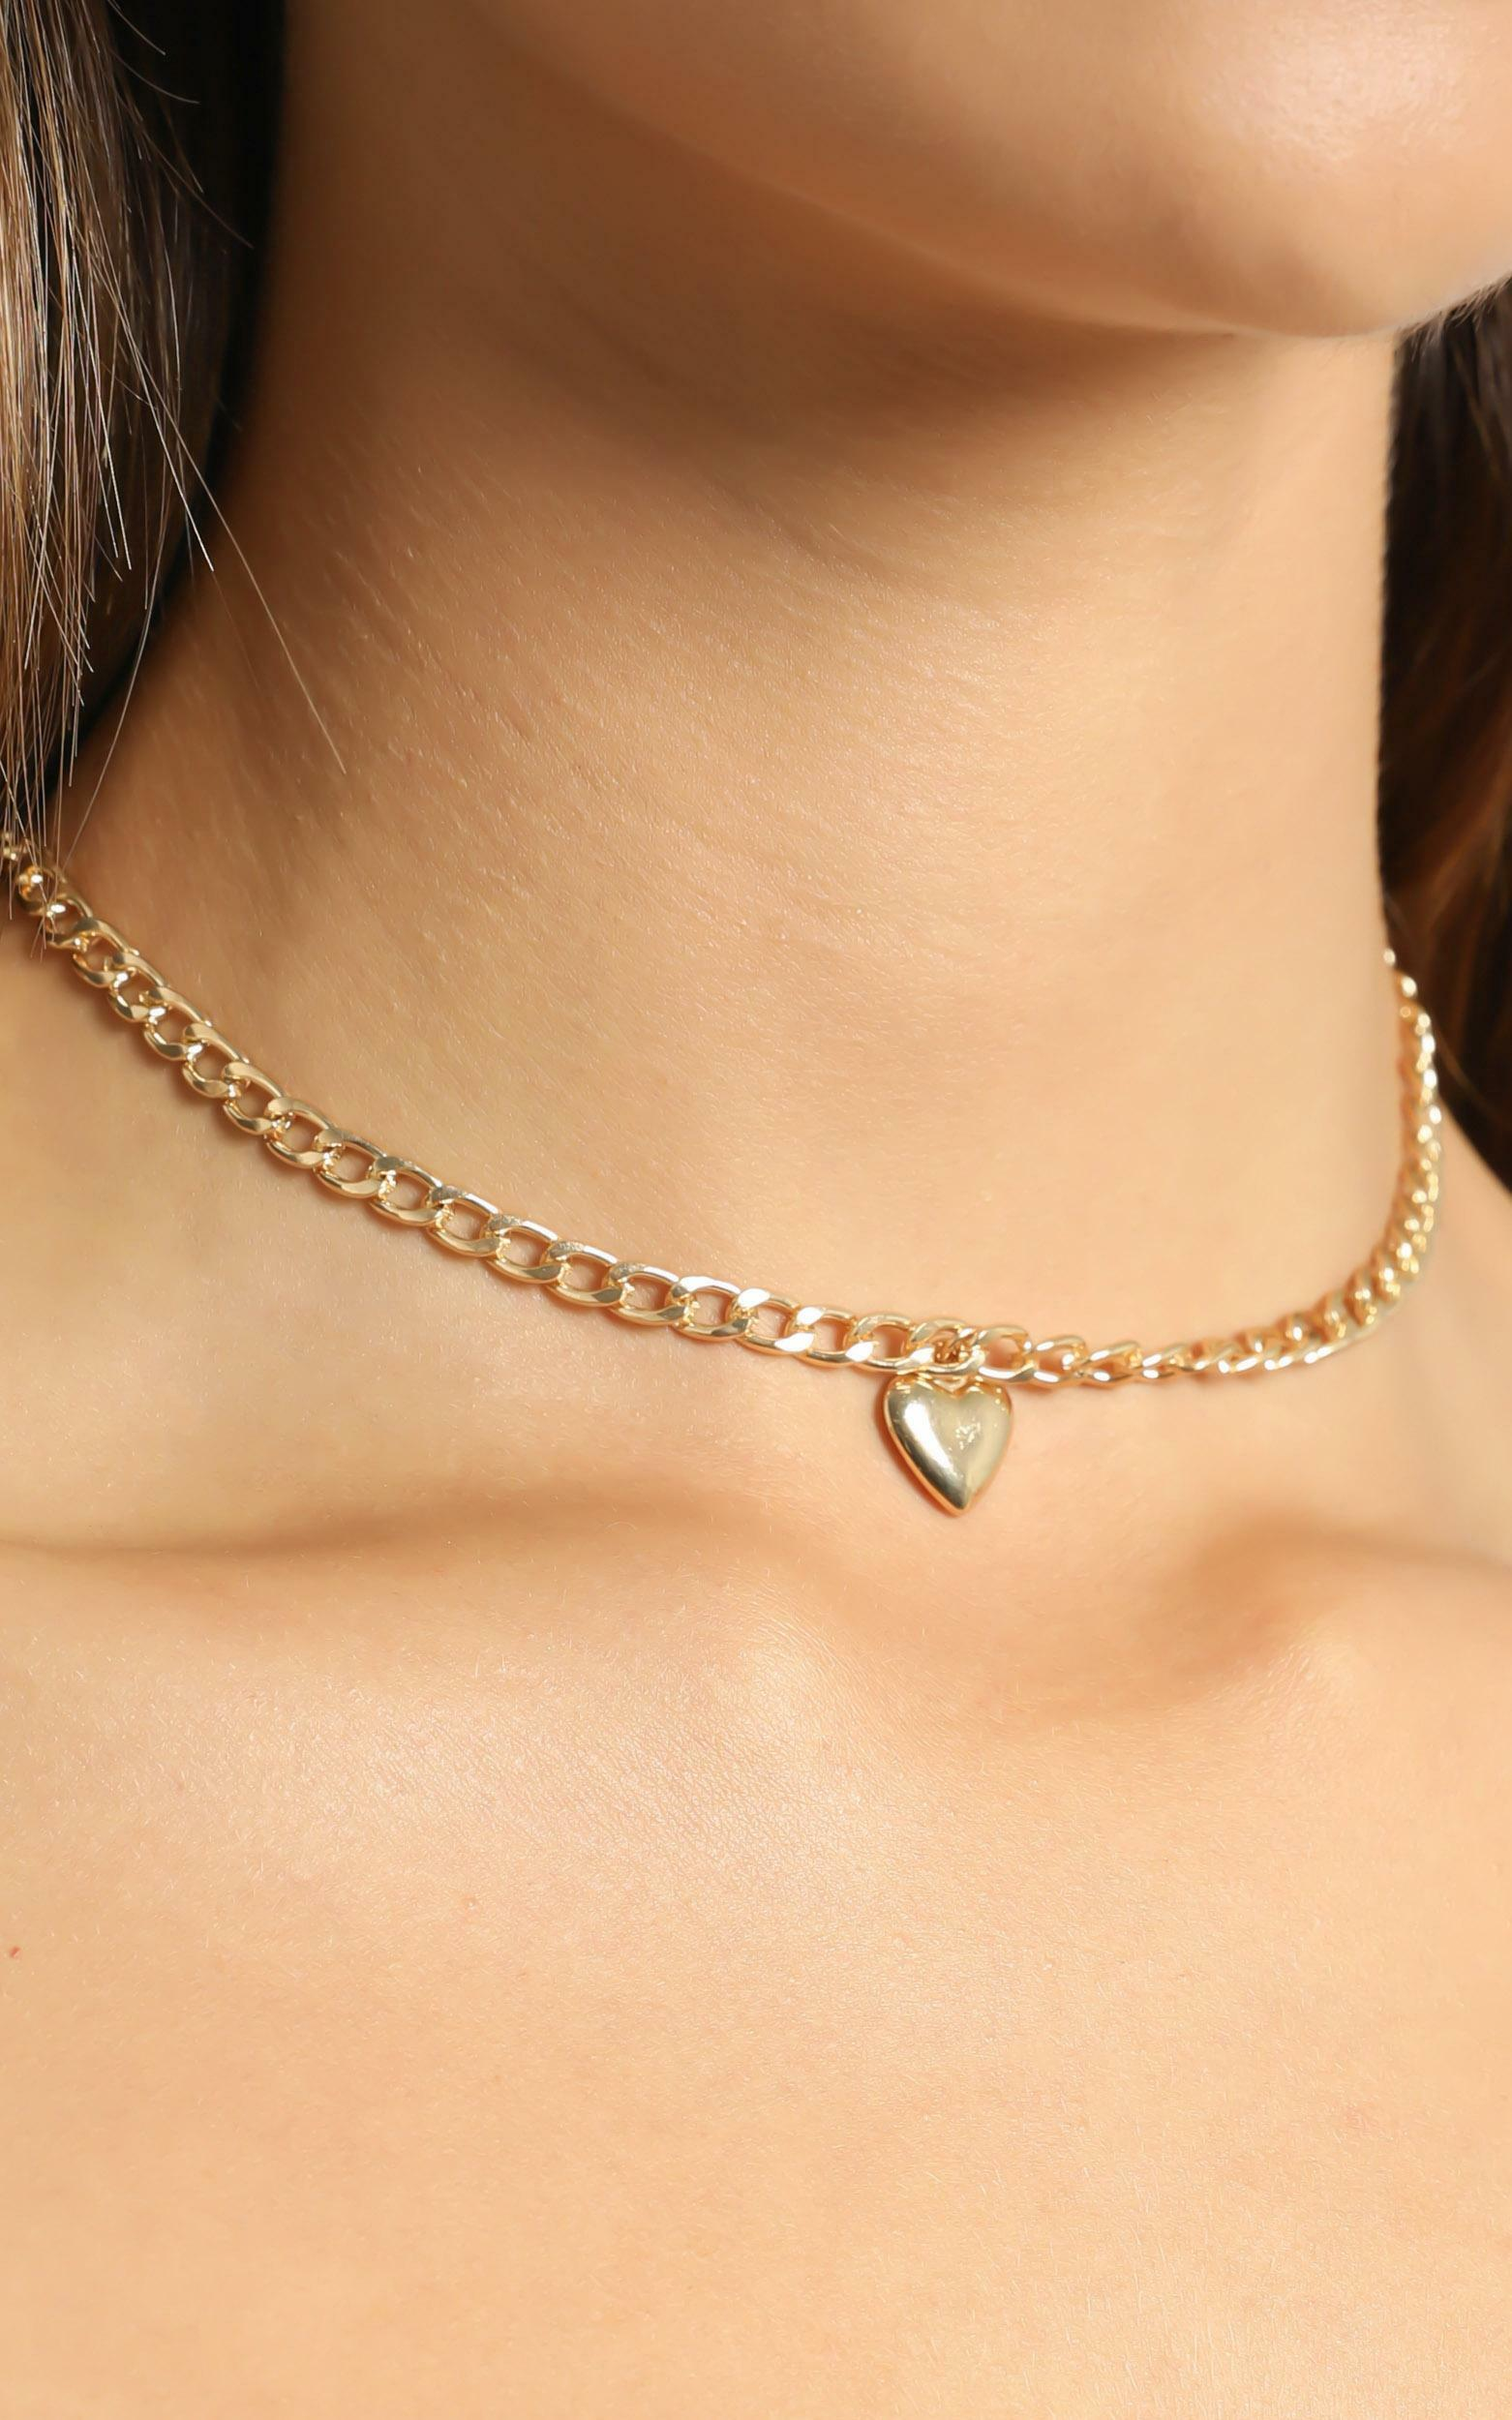 Micaela Necklace in Gold, Gold, hi-res image number null